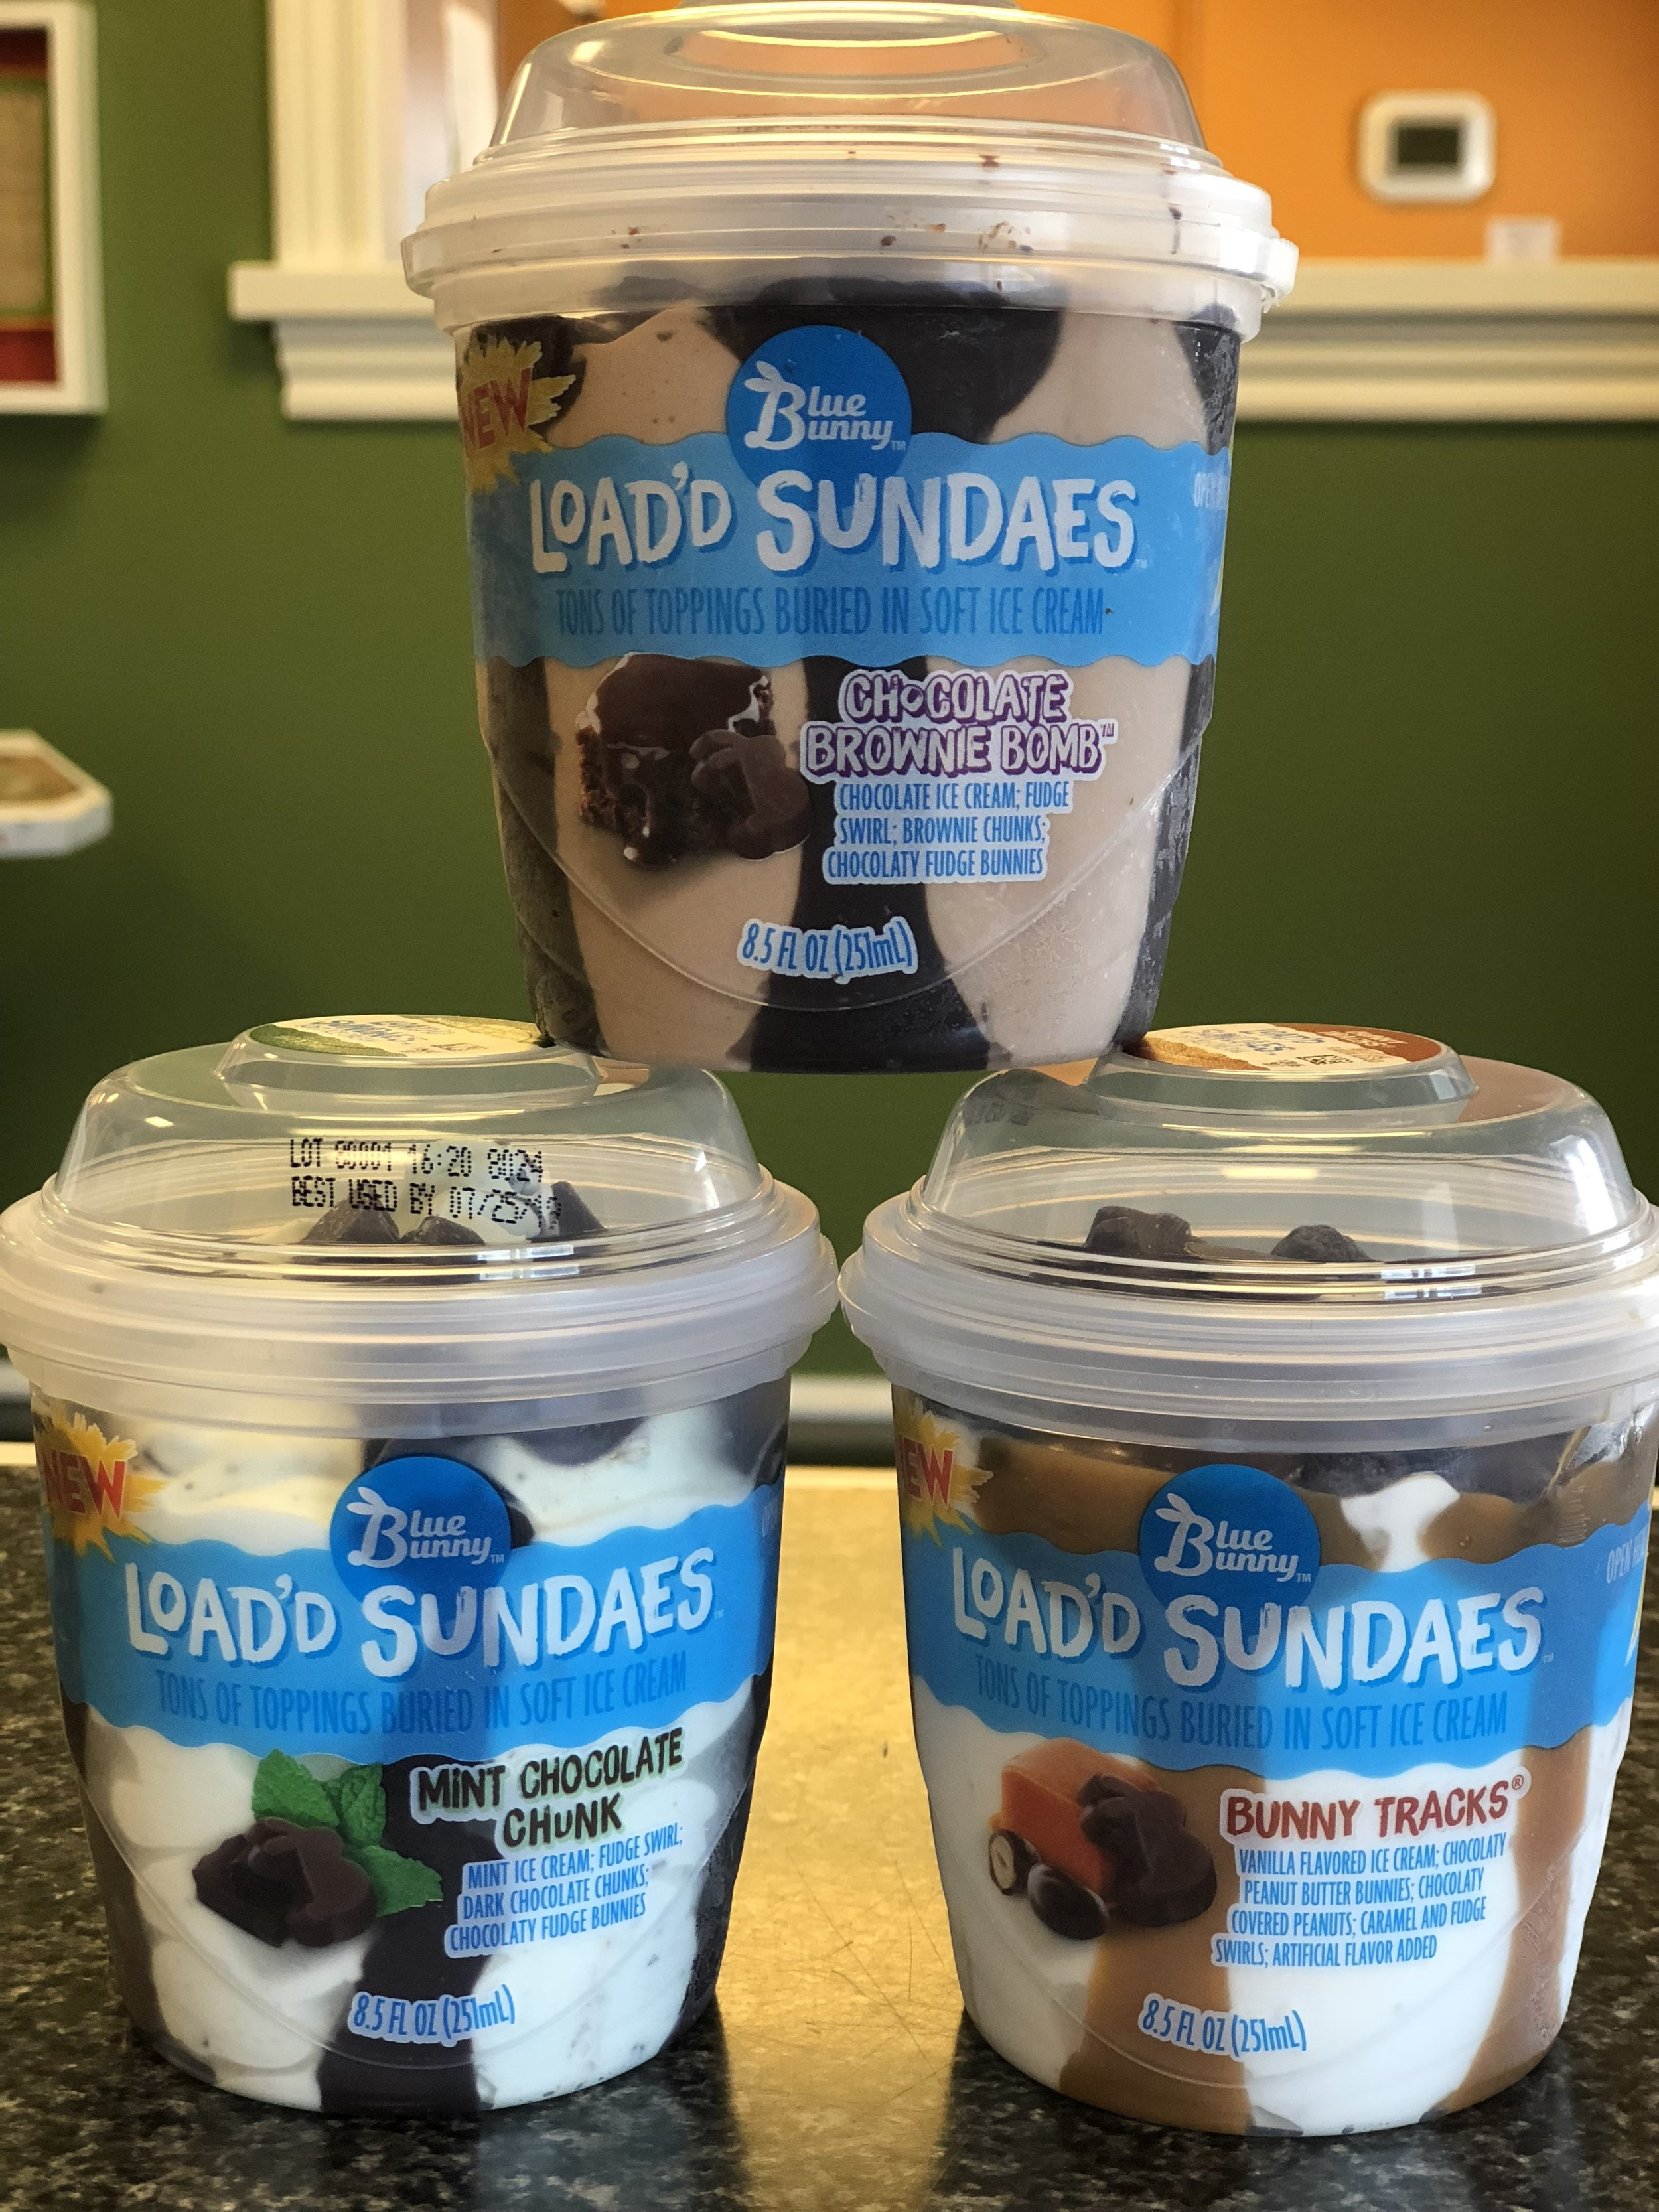 Blue Bunny Load'd Sundaes!  Add a dessert to your meal with Bunny Tracks, Chocolate Brownie Bomb, or Mint Chocolate Chunk sundaes!  Available for delivery too!   $4.24